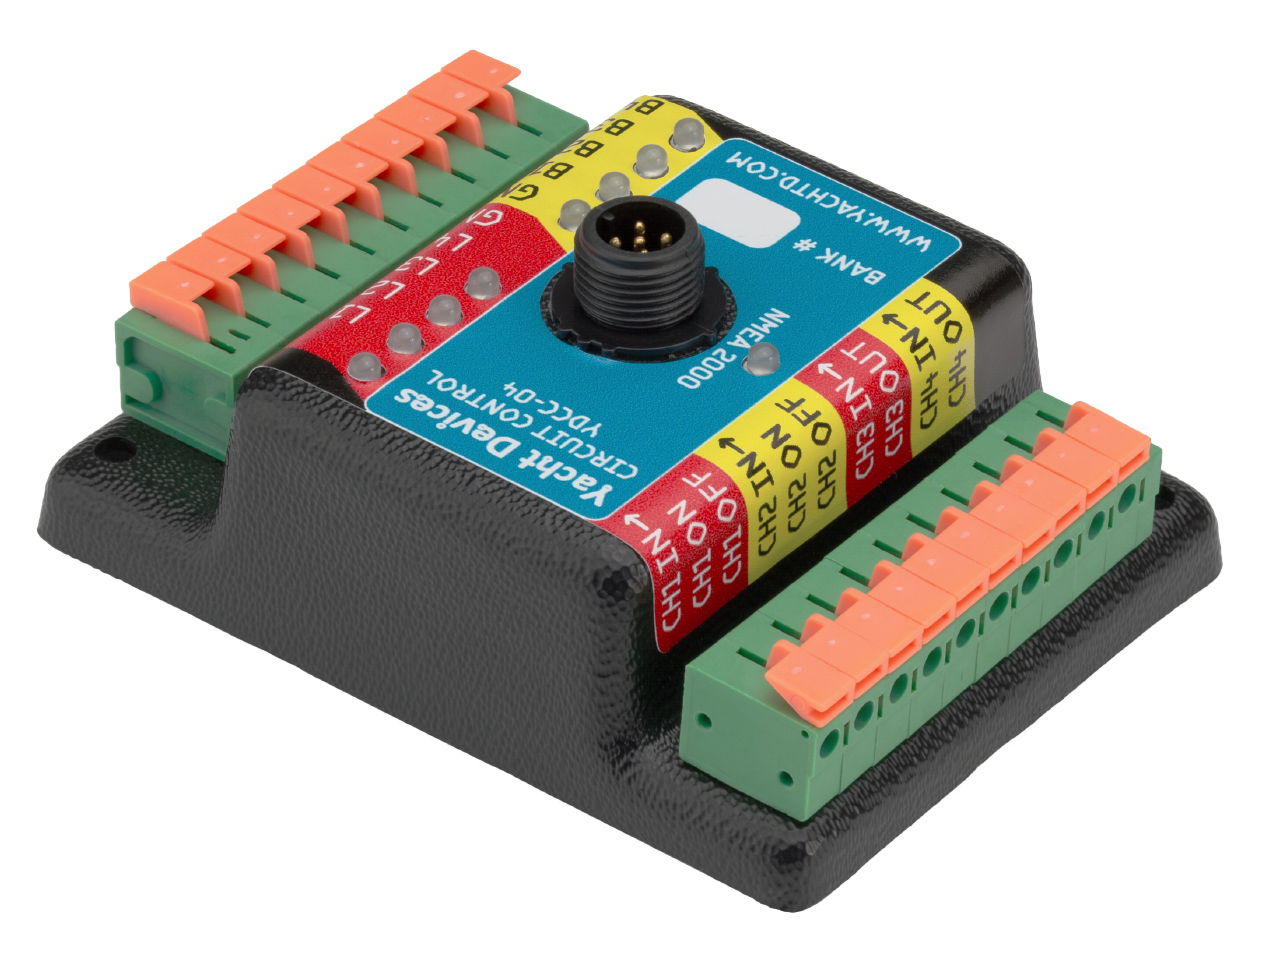 Yacht Devices Circuit Control YDCC-04